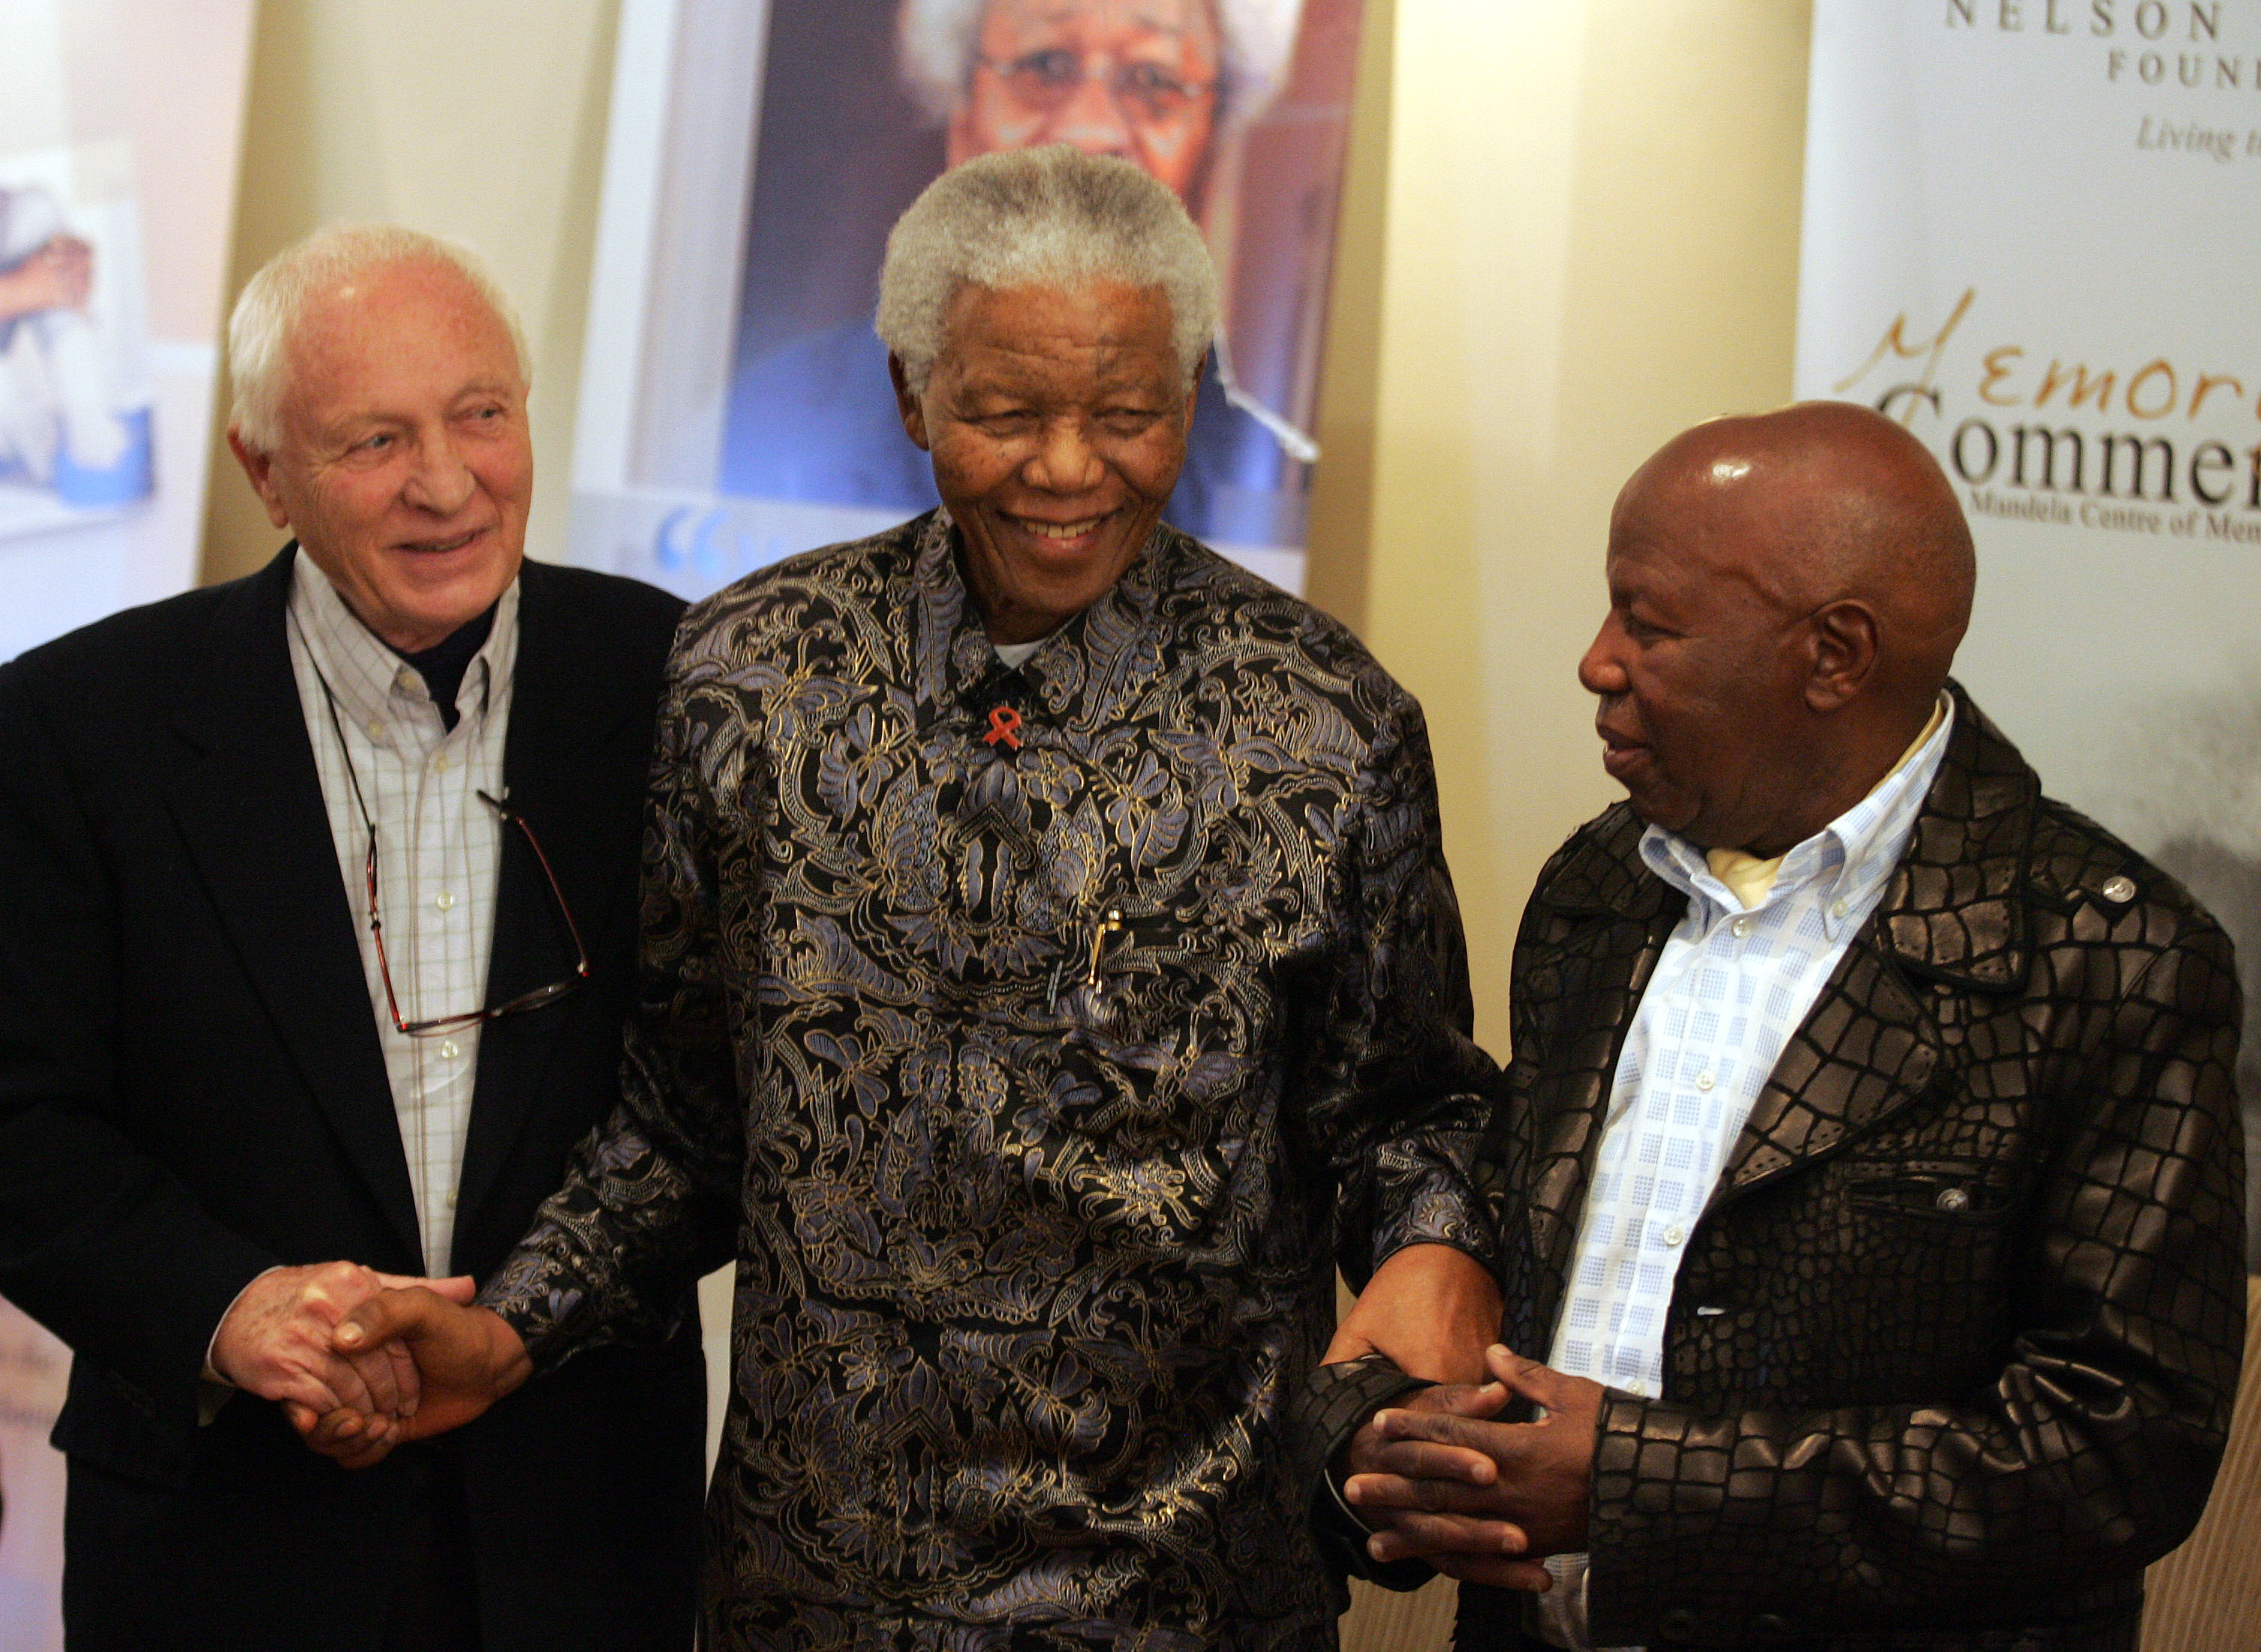 Kumalo stands with former South African President Nelson Mandela and photographer Jurgen Schadeberg during the launch of a photo exhibition at the Nelson Mandela Foundation in Johannesburg, July 12, 2006. Kumalo photographed Mandela and his family extensively throughout his career.